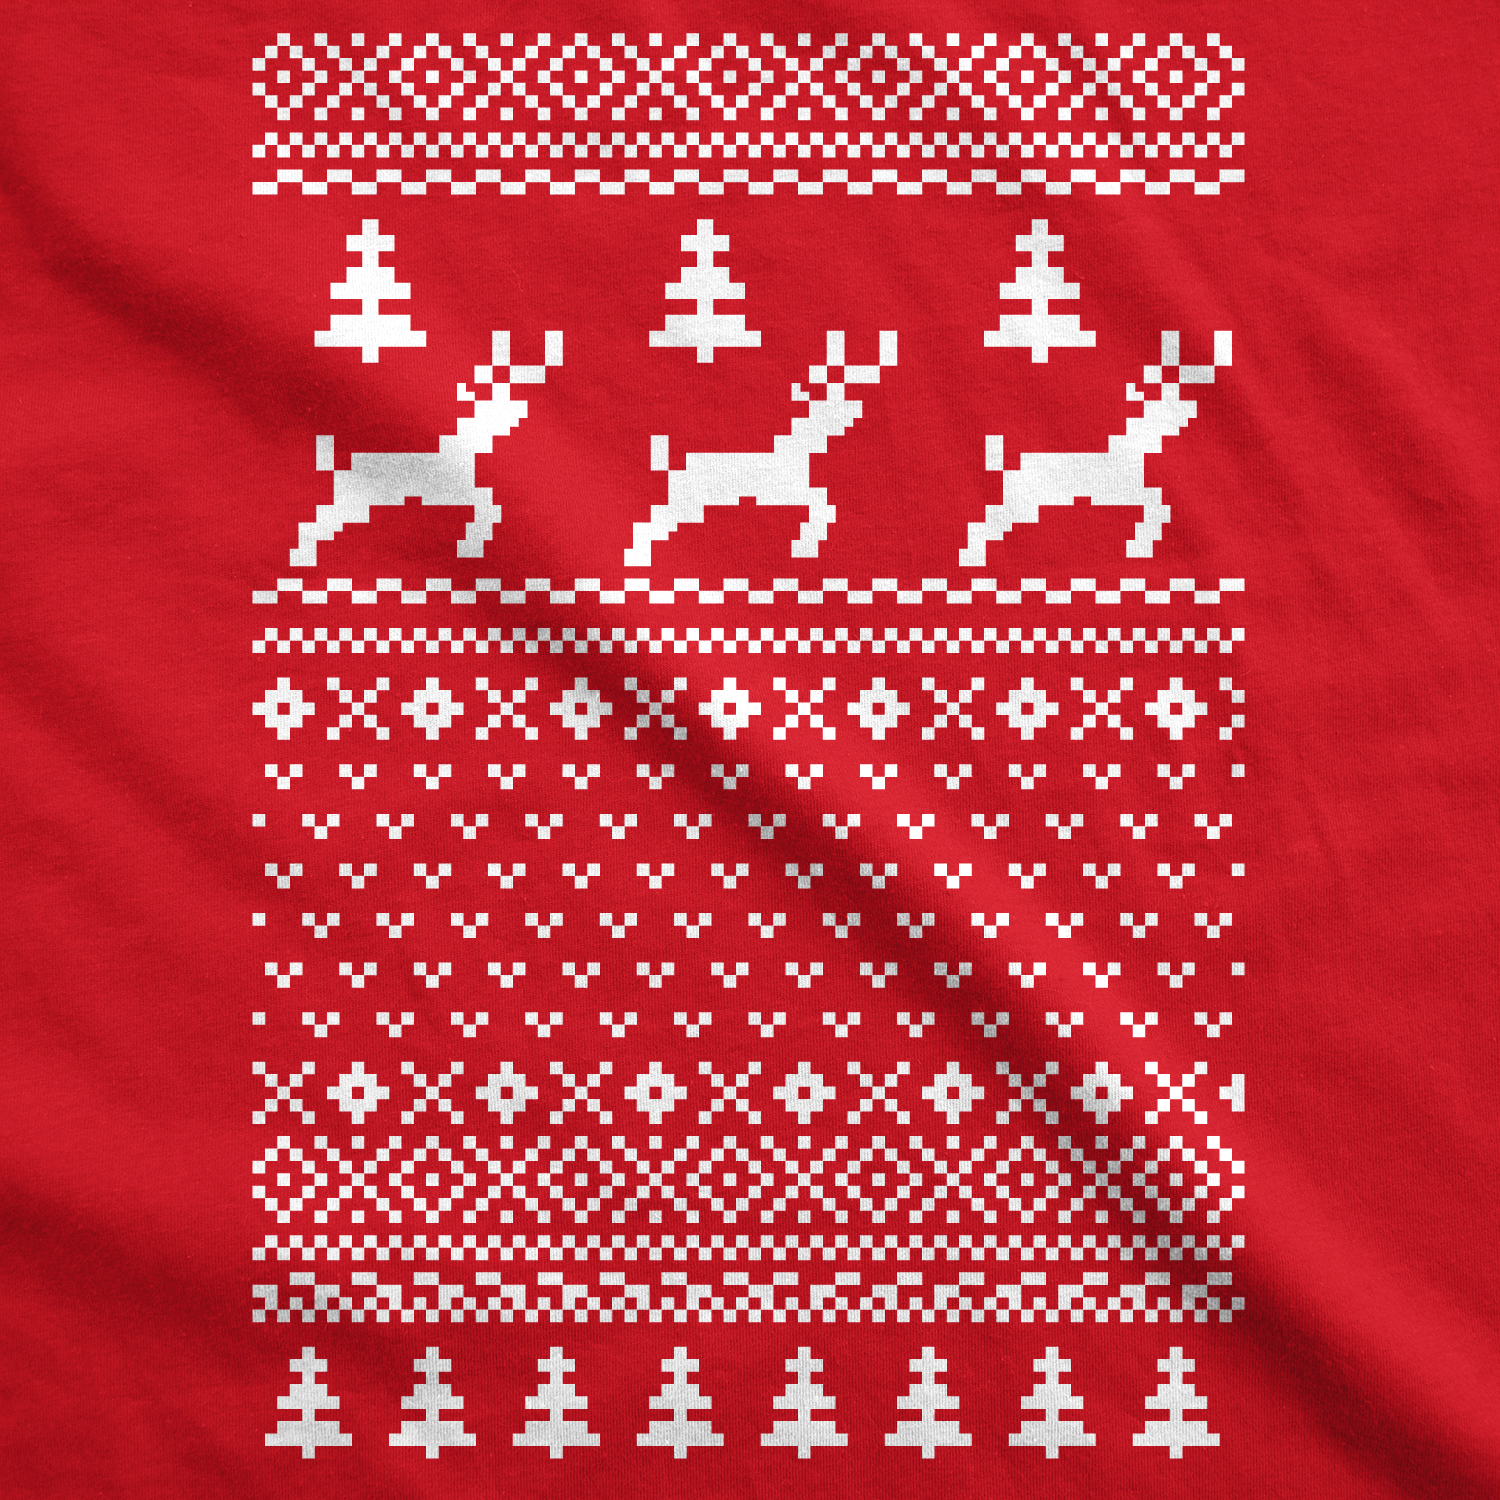 Ugly Christmas Sweater Pattern.Details About Reindeer Ugly Christmas Sweater T Shirt Funny Holiday Party Vintage Pattern Tee